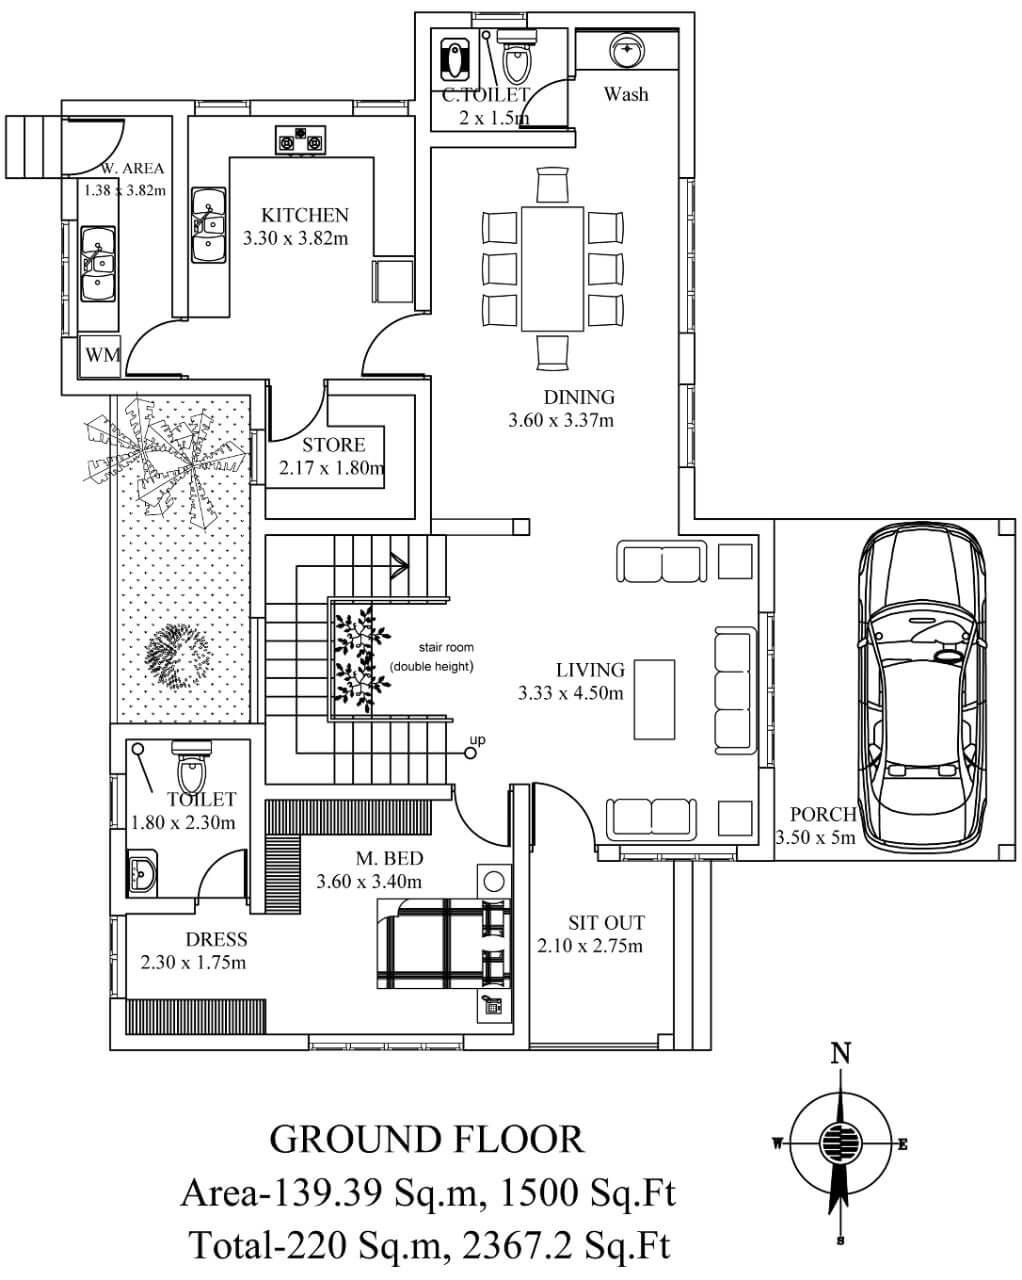 D'life home interiors kochi kerala building plan for a  sft house  residential projects